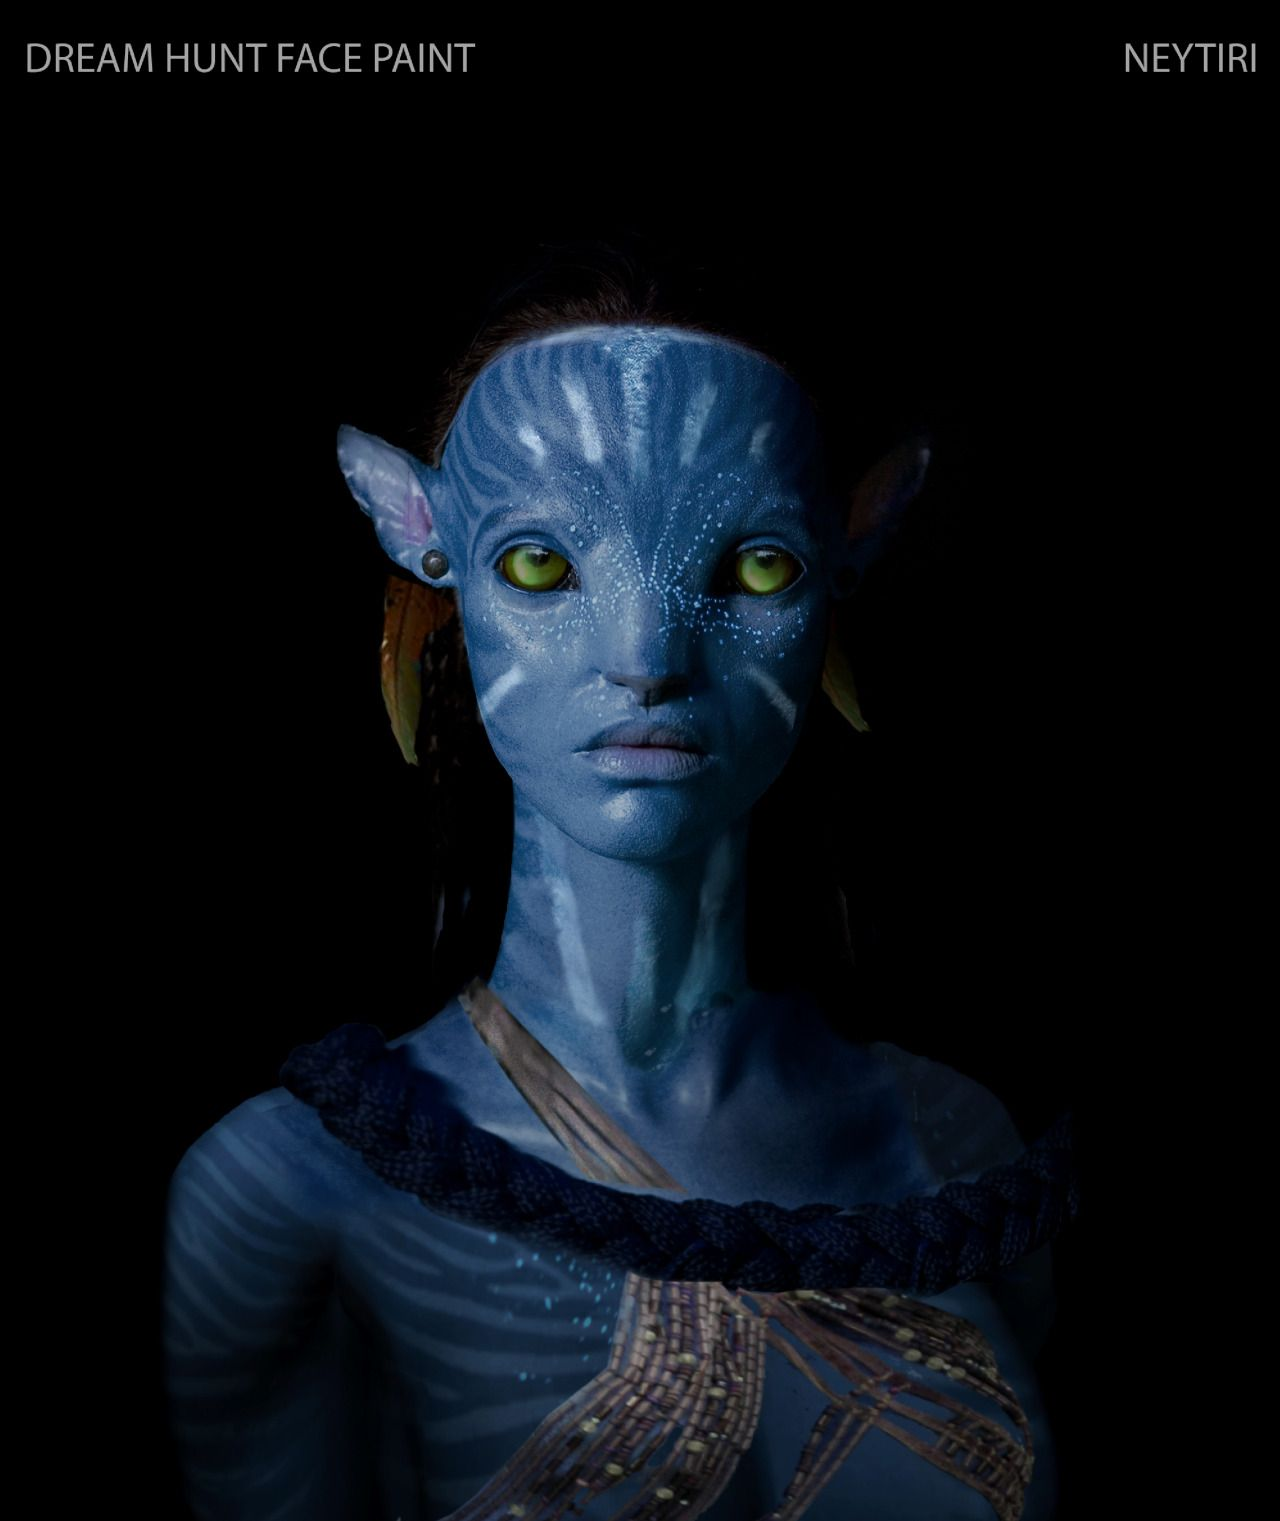 Neytiri Face Paint Concept Art.